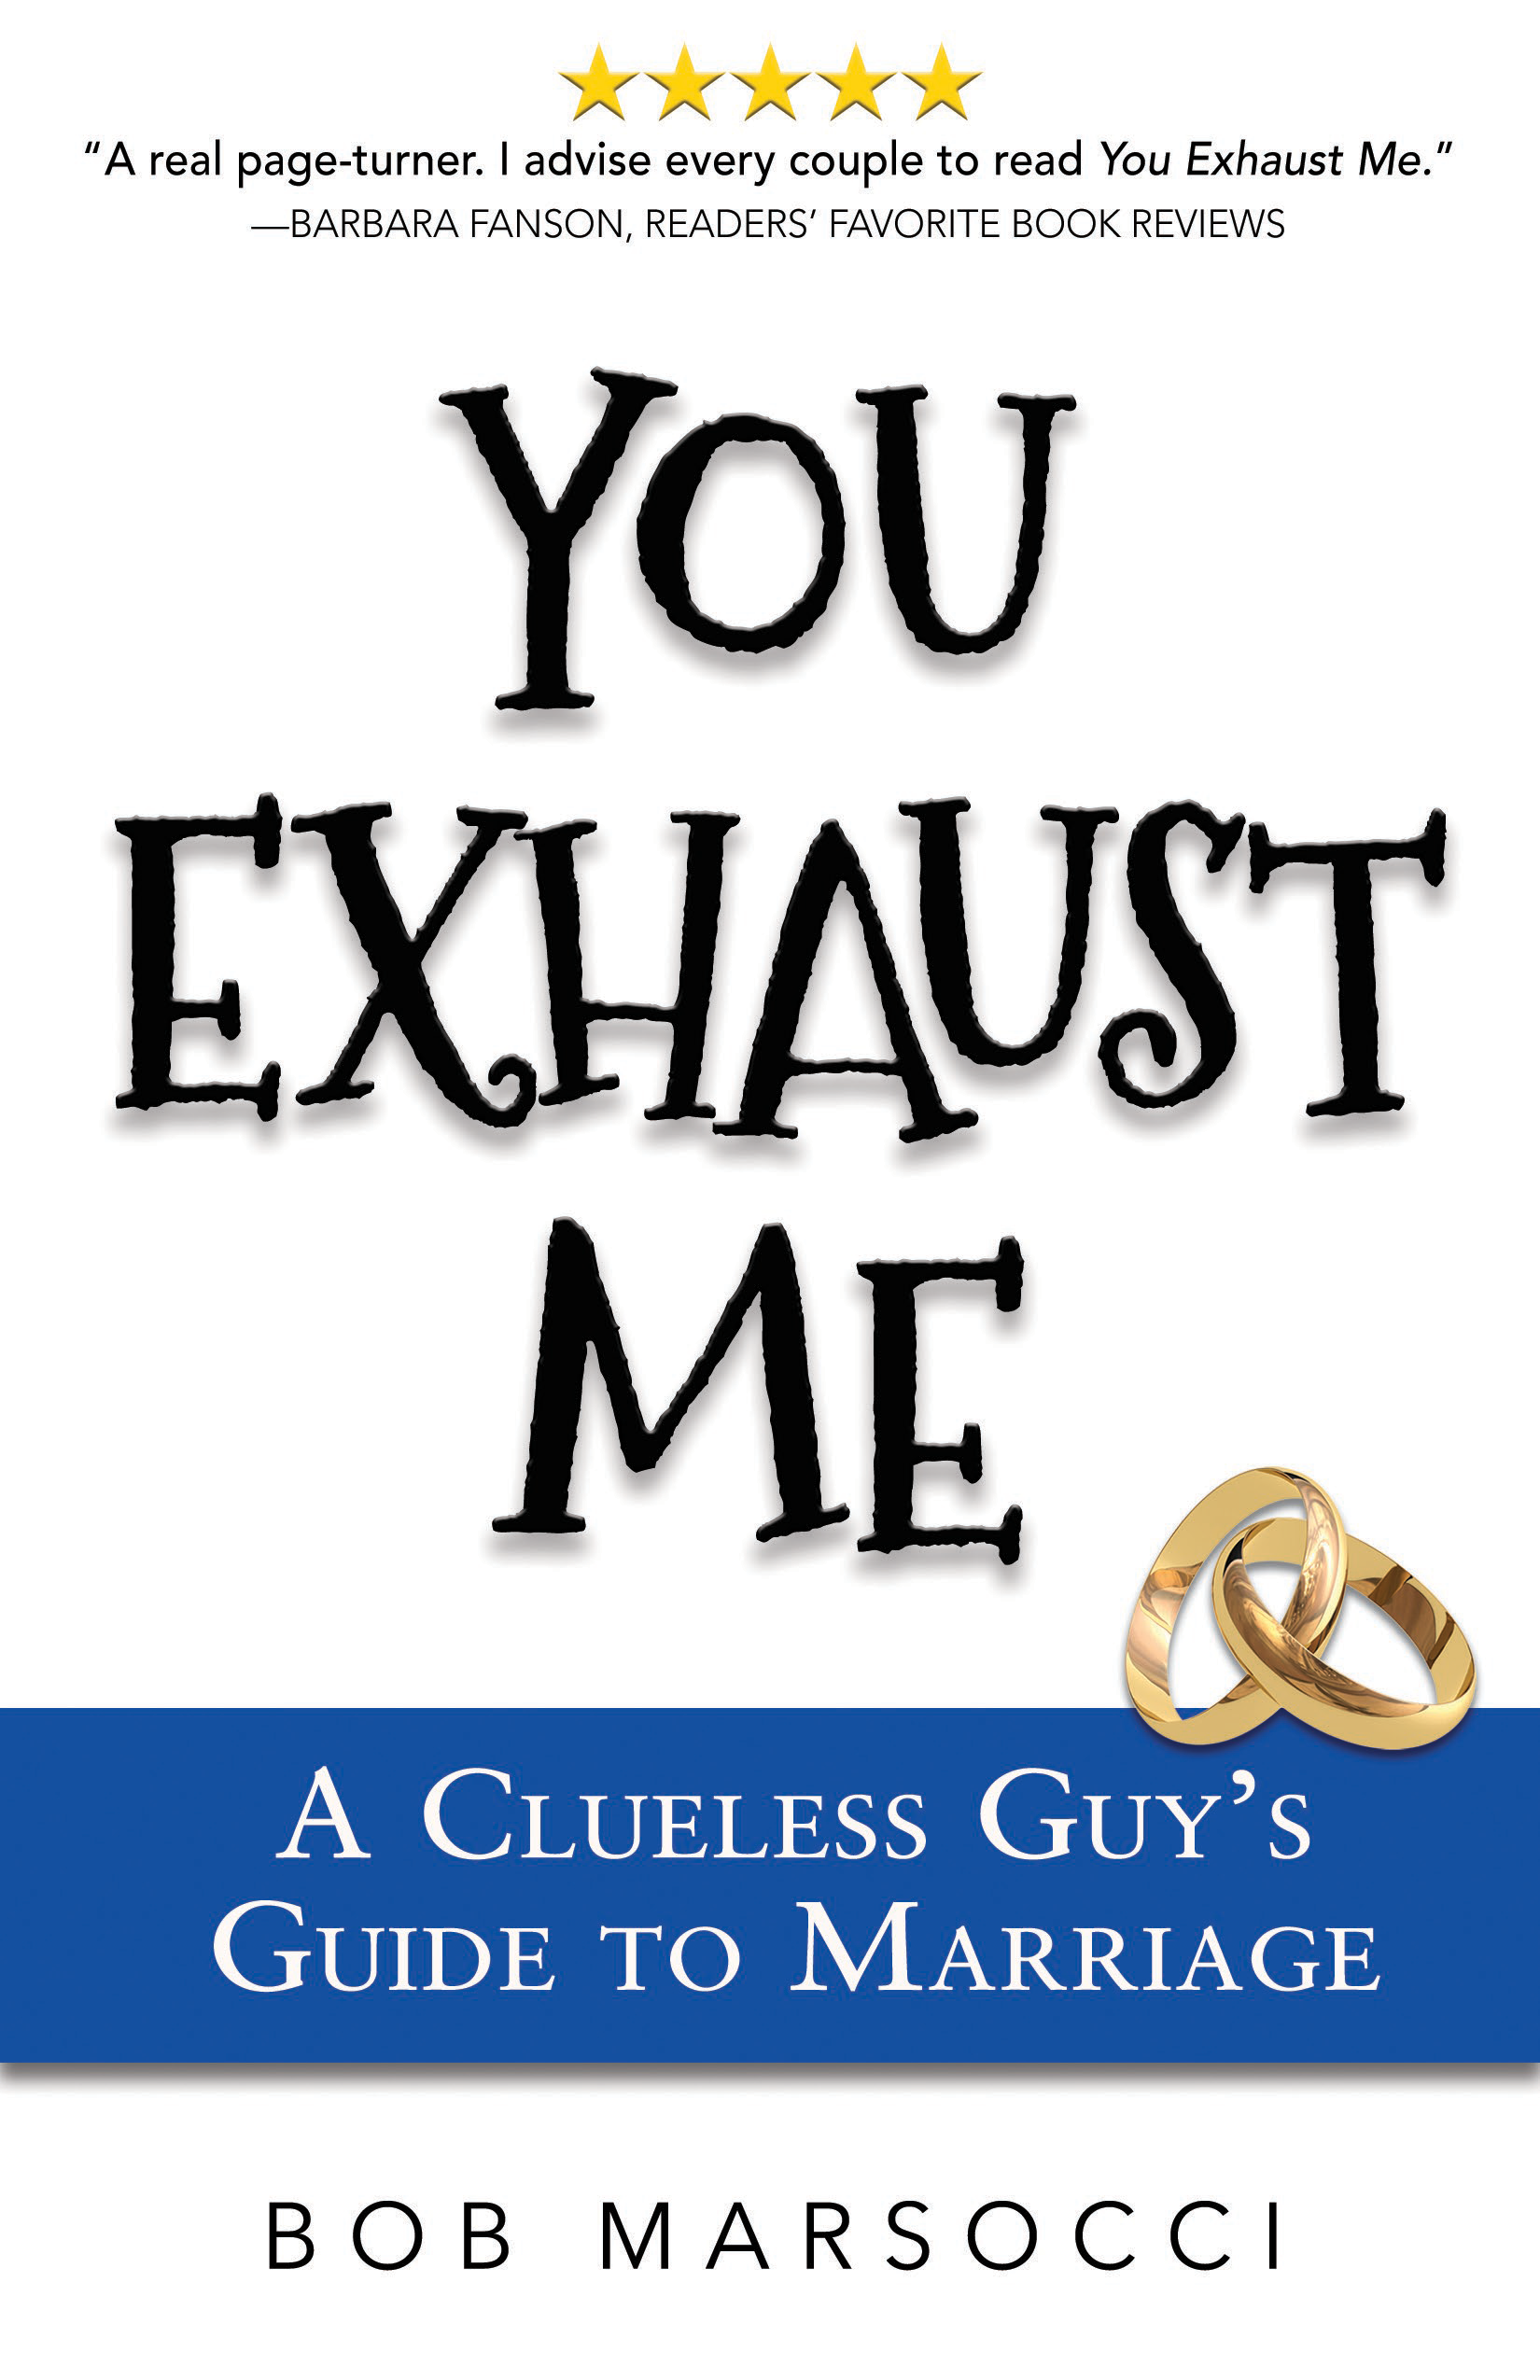 you-exhaust-me-a-clueless-guys-guide-to-marriage-the-perfect-groom-gift-this-wedding-season.png (1650×2550)